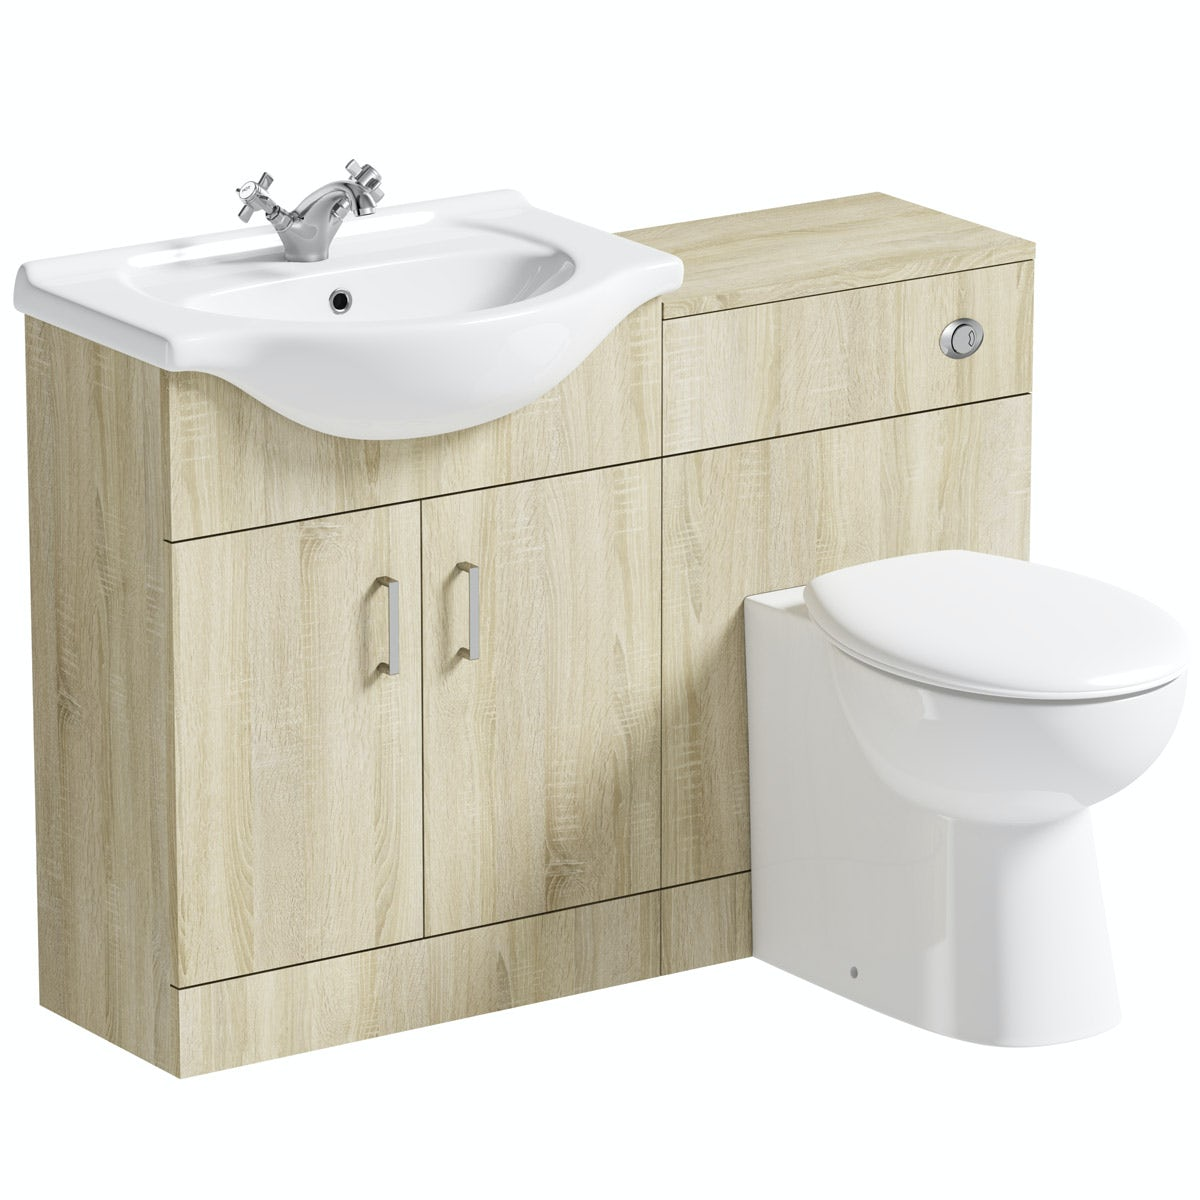 Orchard Eden oak 1140 combination with Clarity back to wall toilet